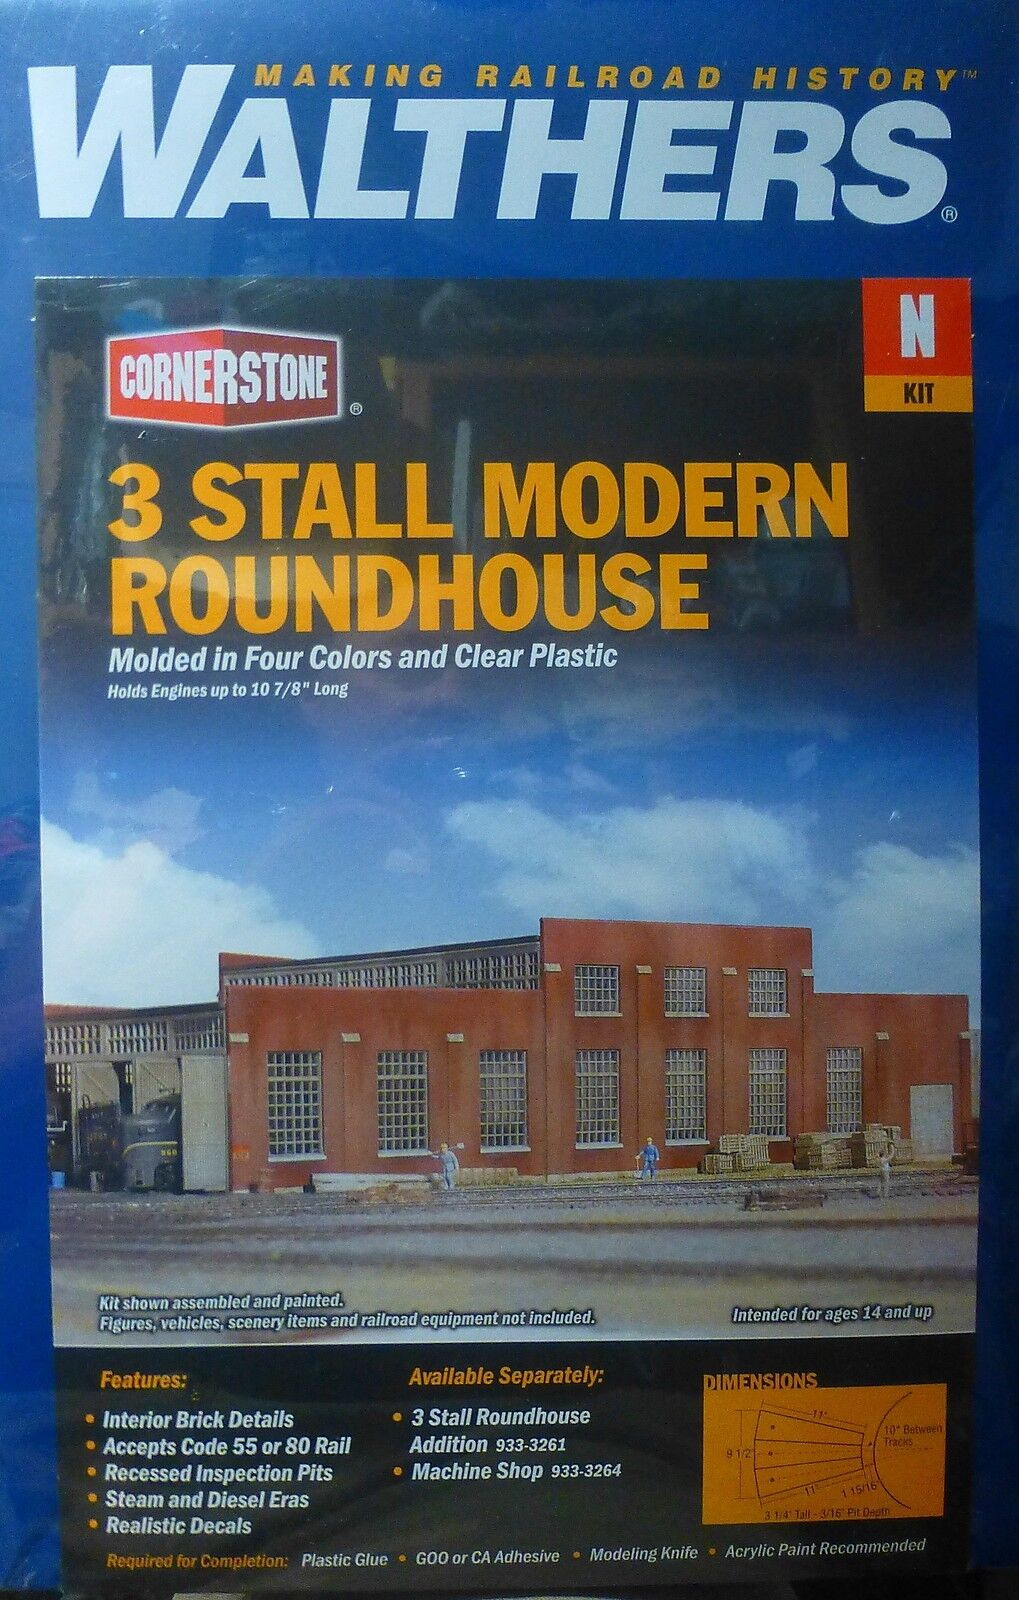 Walthers N  933-3260  3 Stall Modern Roundhouse Kit  Plastic kit